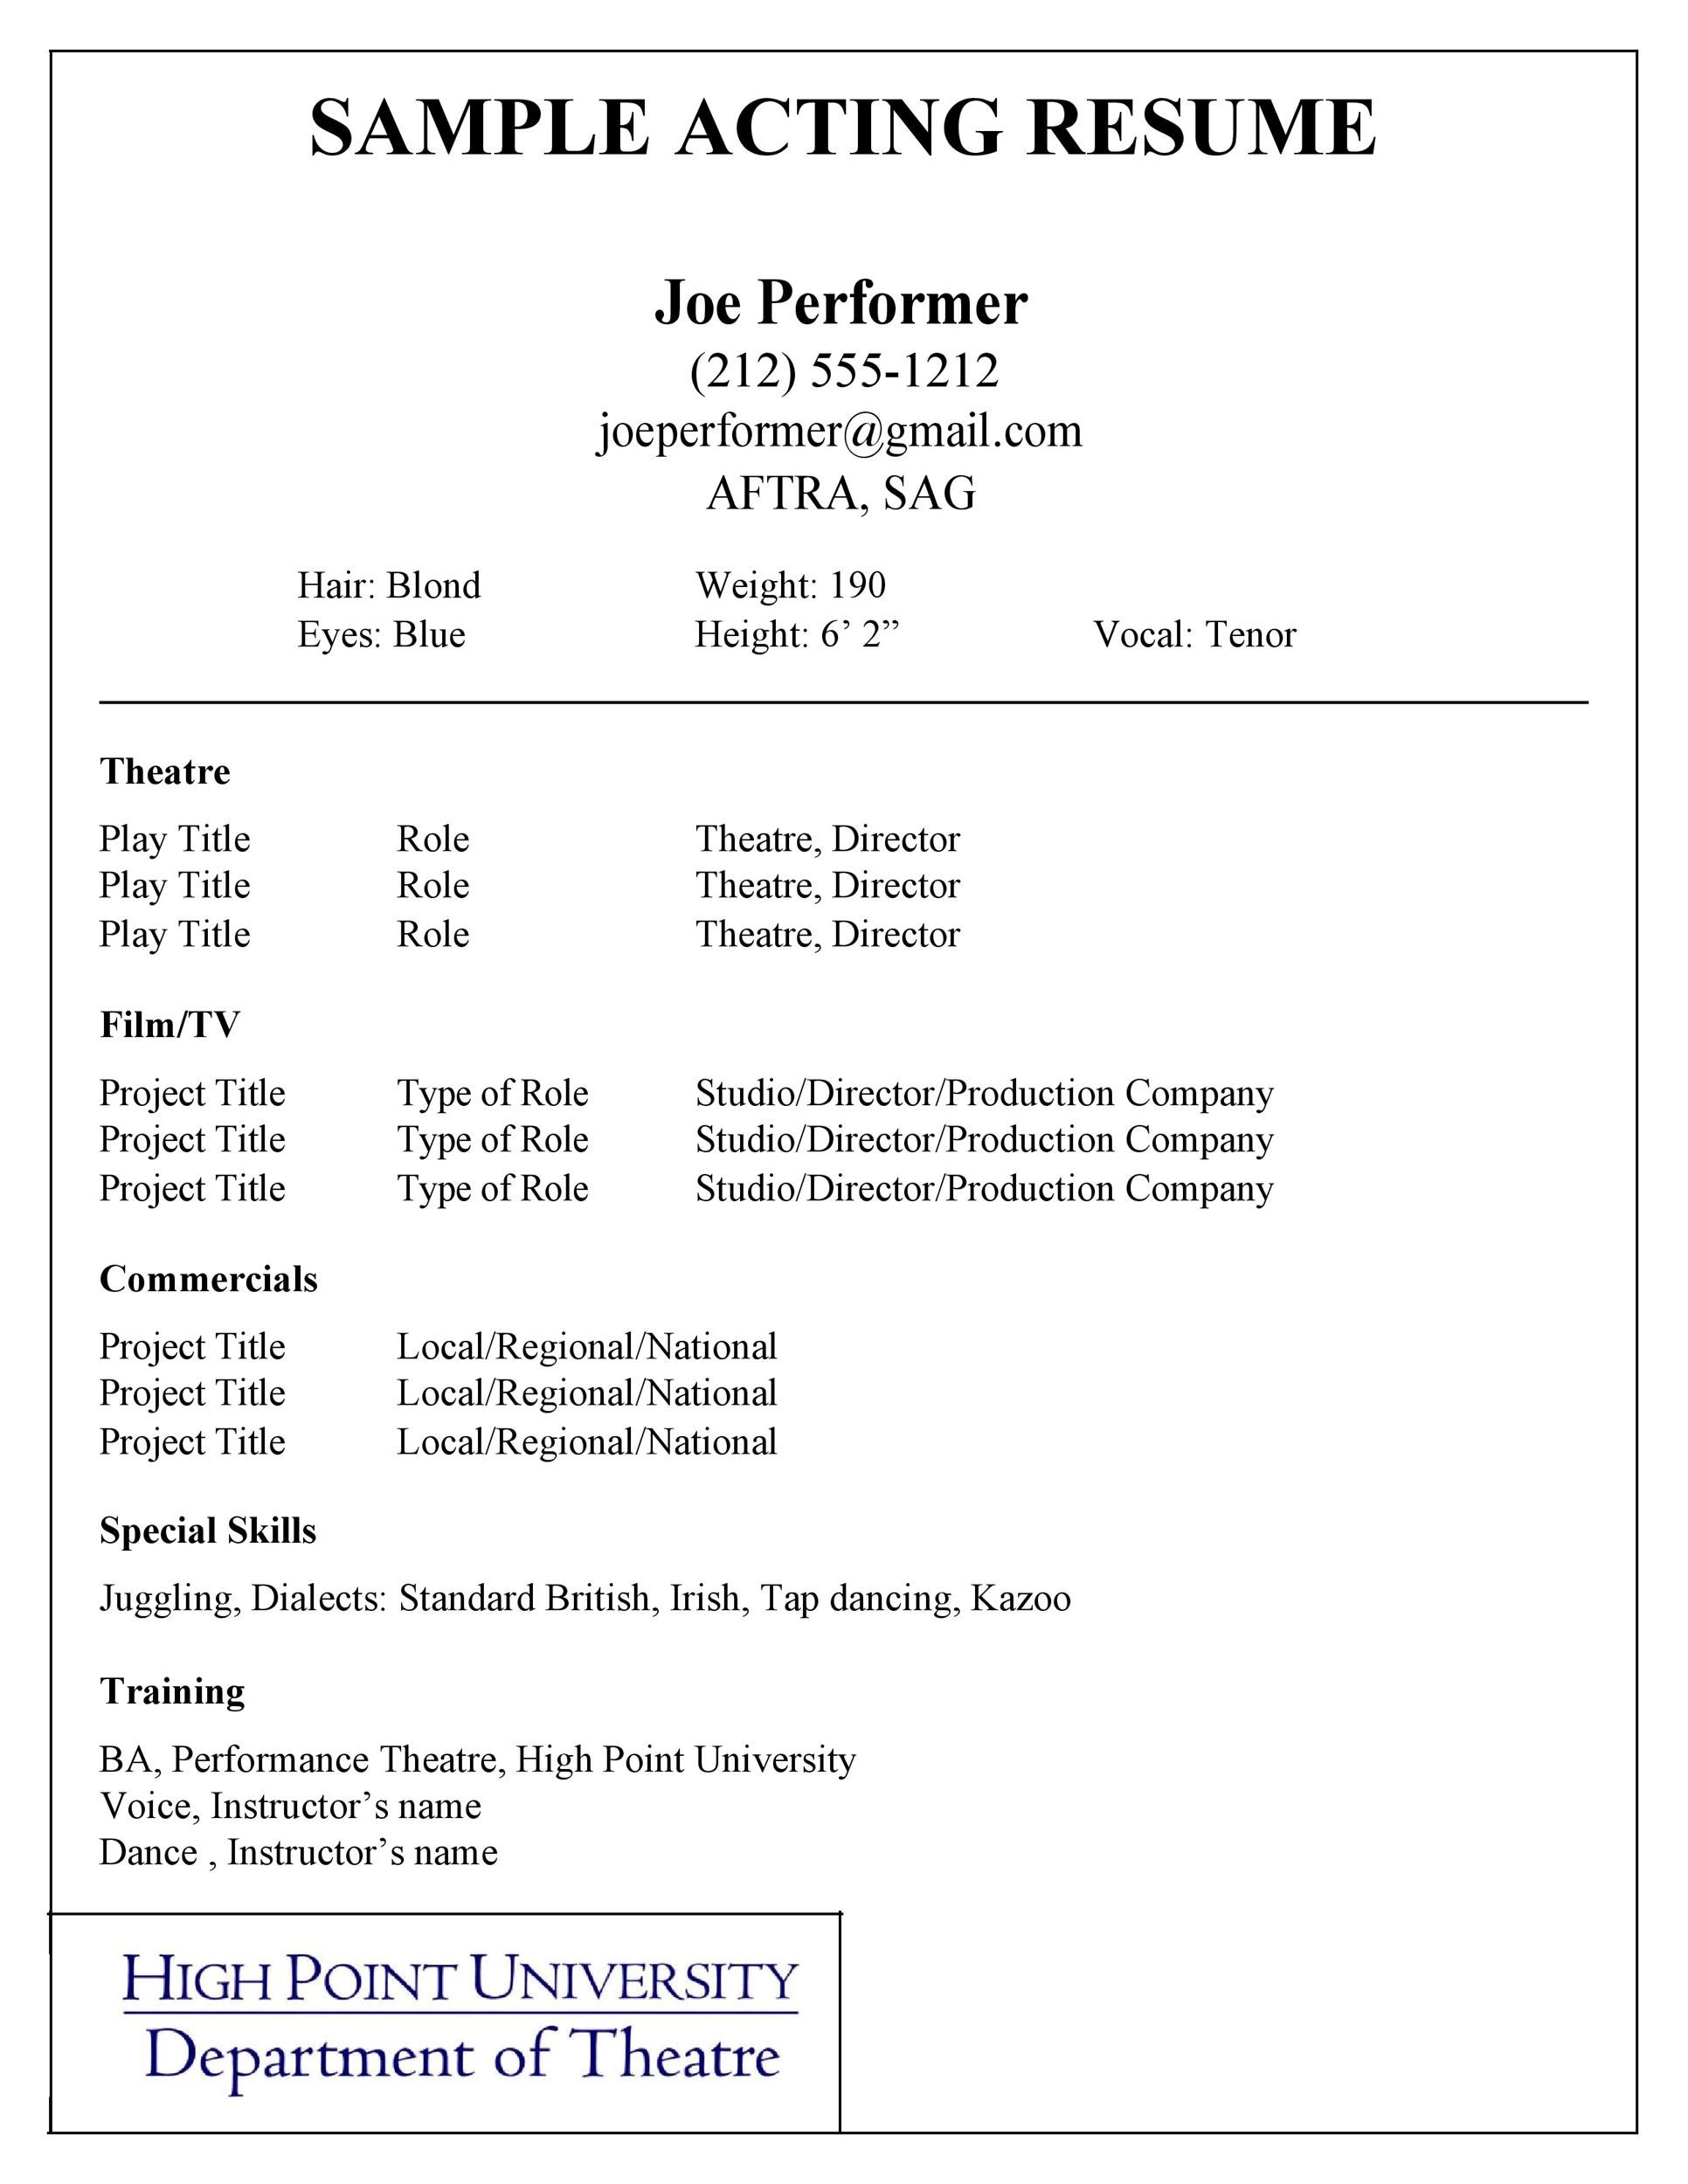 50 FREE Acting Resume Templates Word Google Docs Template Lab